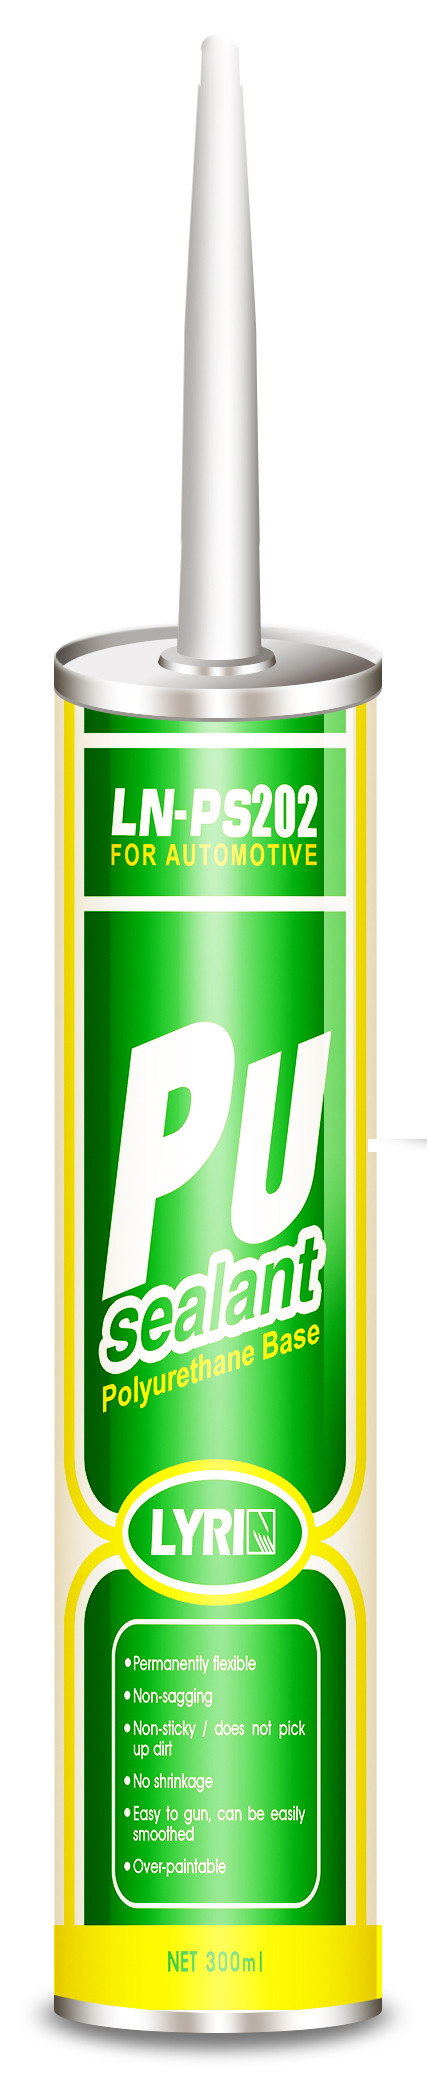 Multi Purpose Polyurethane Adhesive Sealant , Car Flexible Polyurethane Caulk